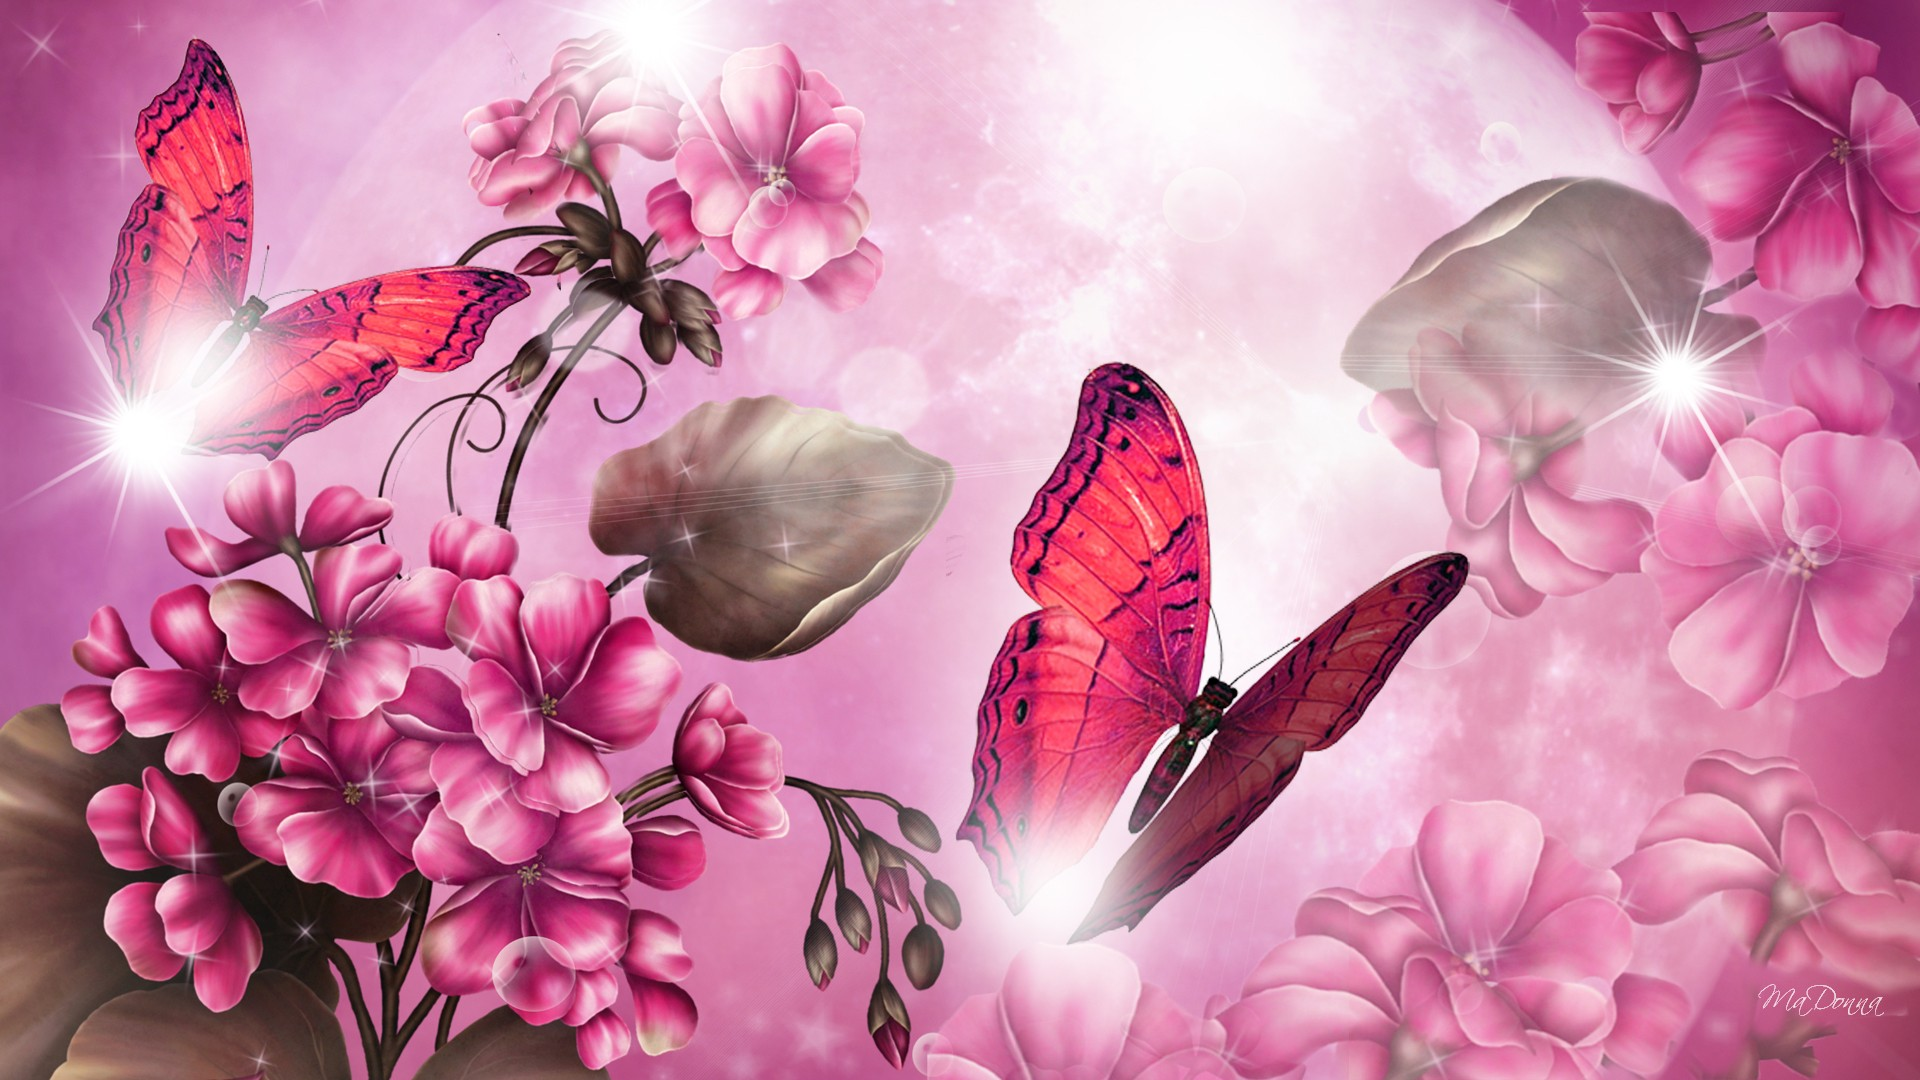 Pink Butterfly Wallpaper Images at Abstract Monodomo 1920x1080